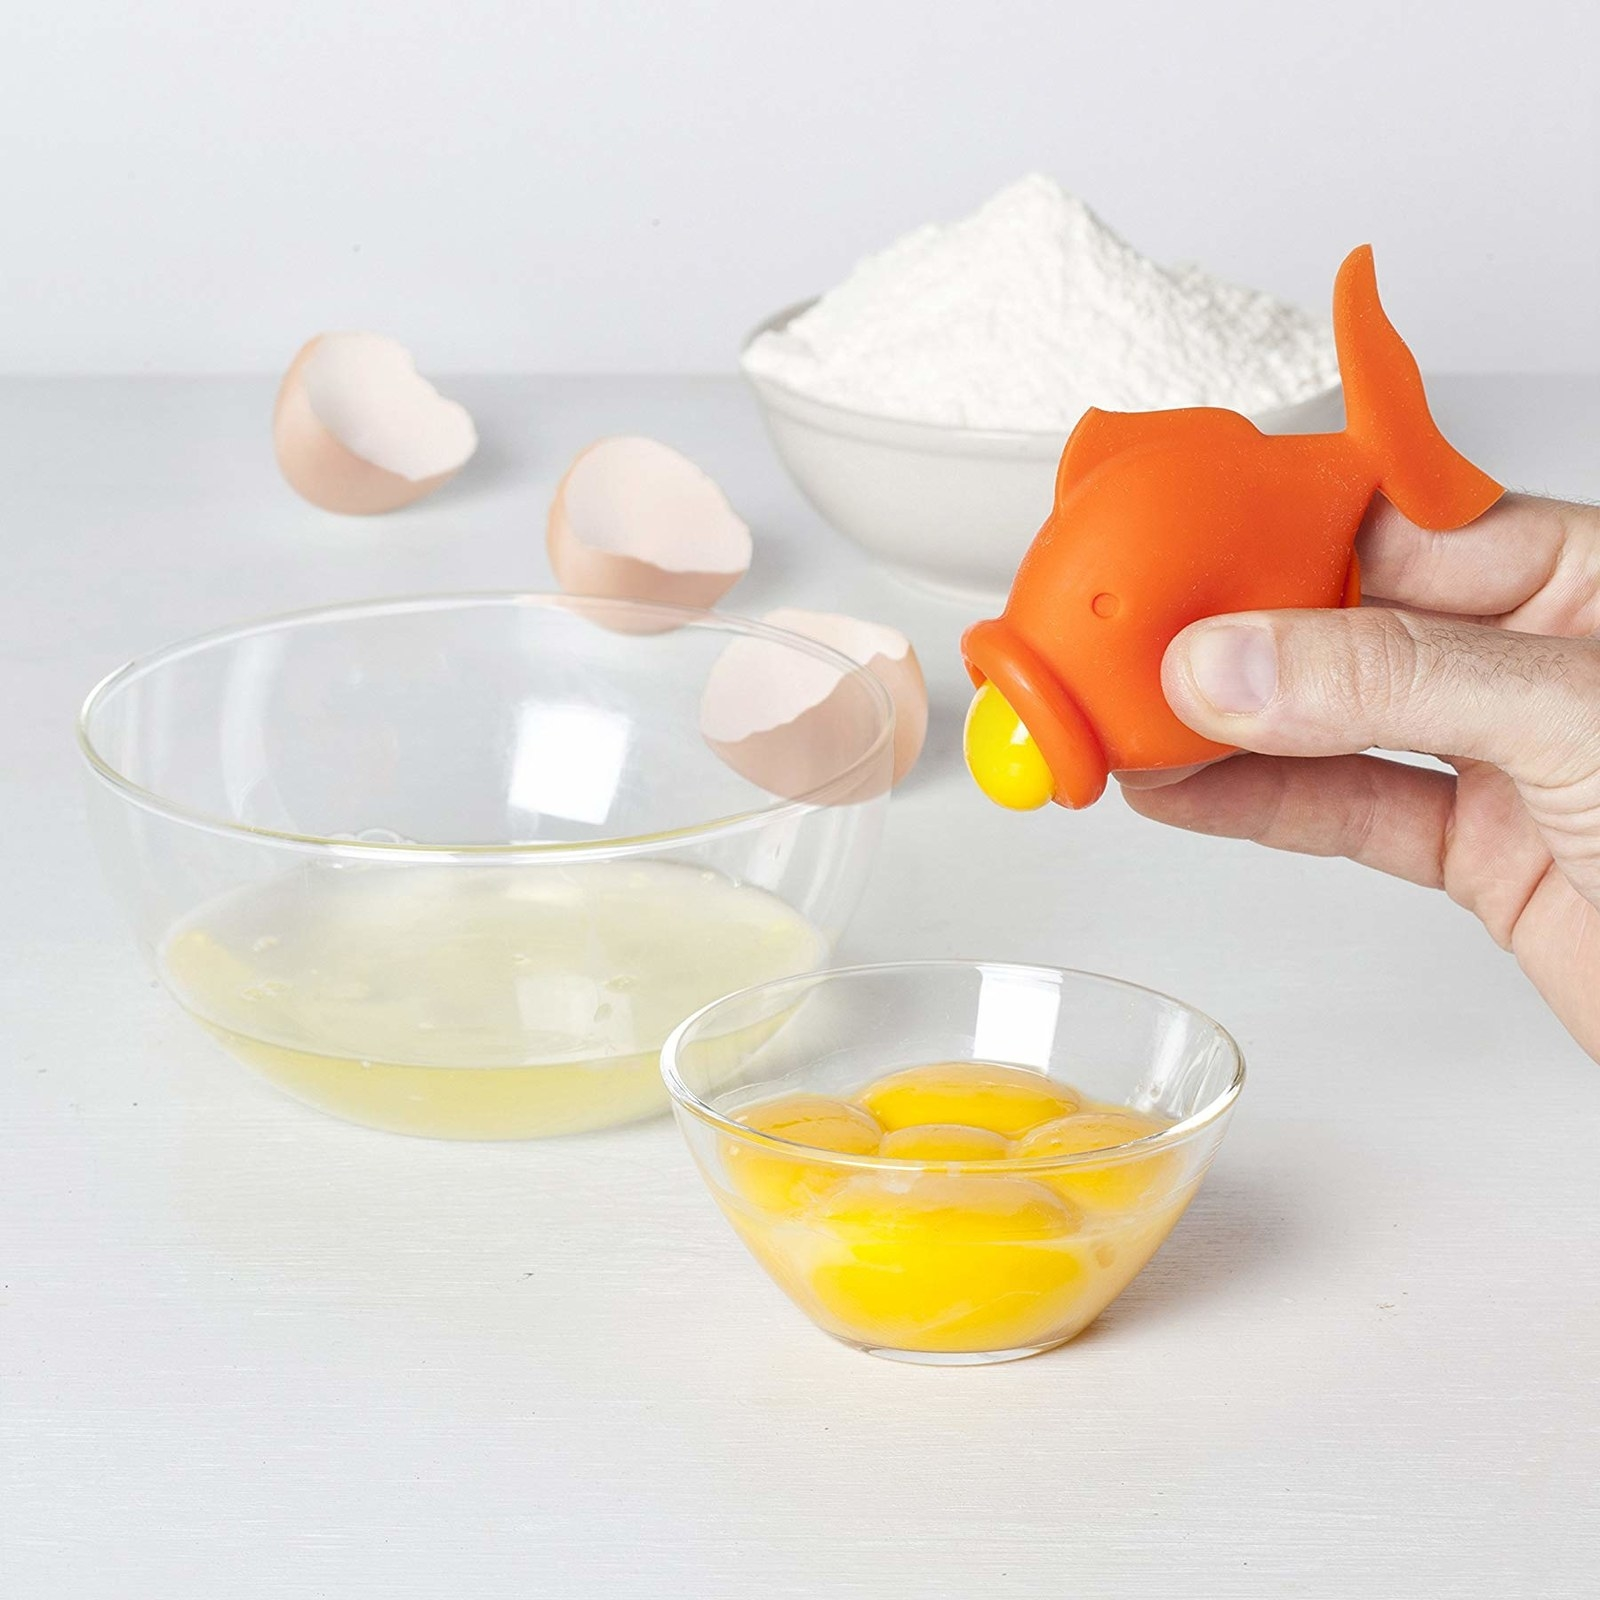 Hand squeezing egg yolk out of the fish-shaped egg separator